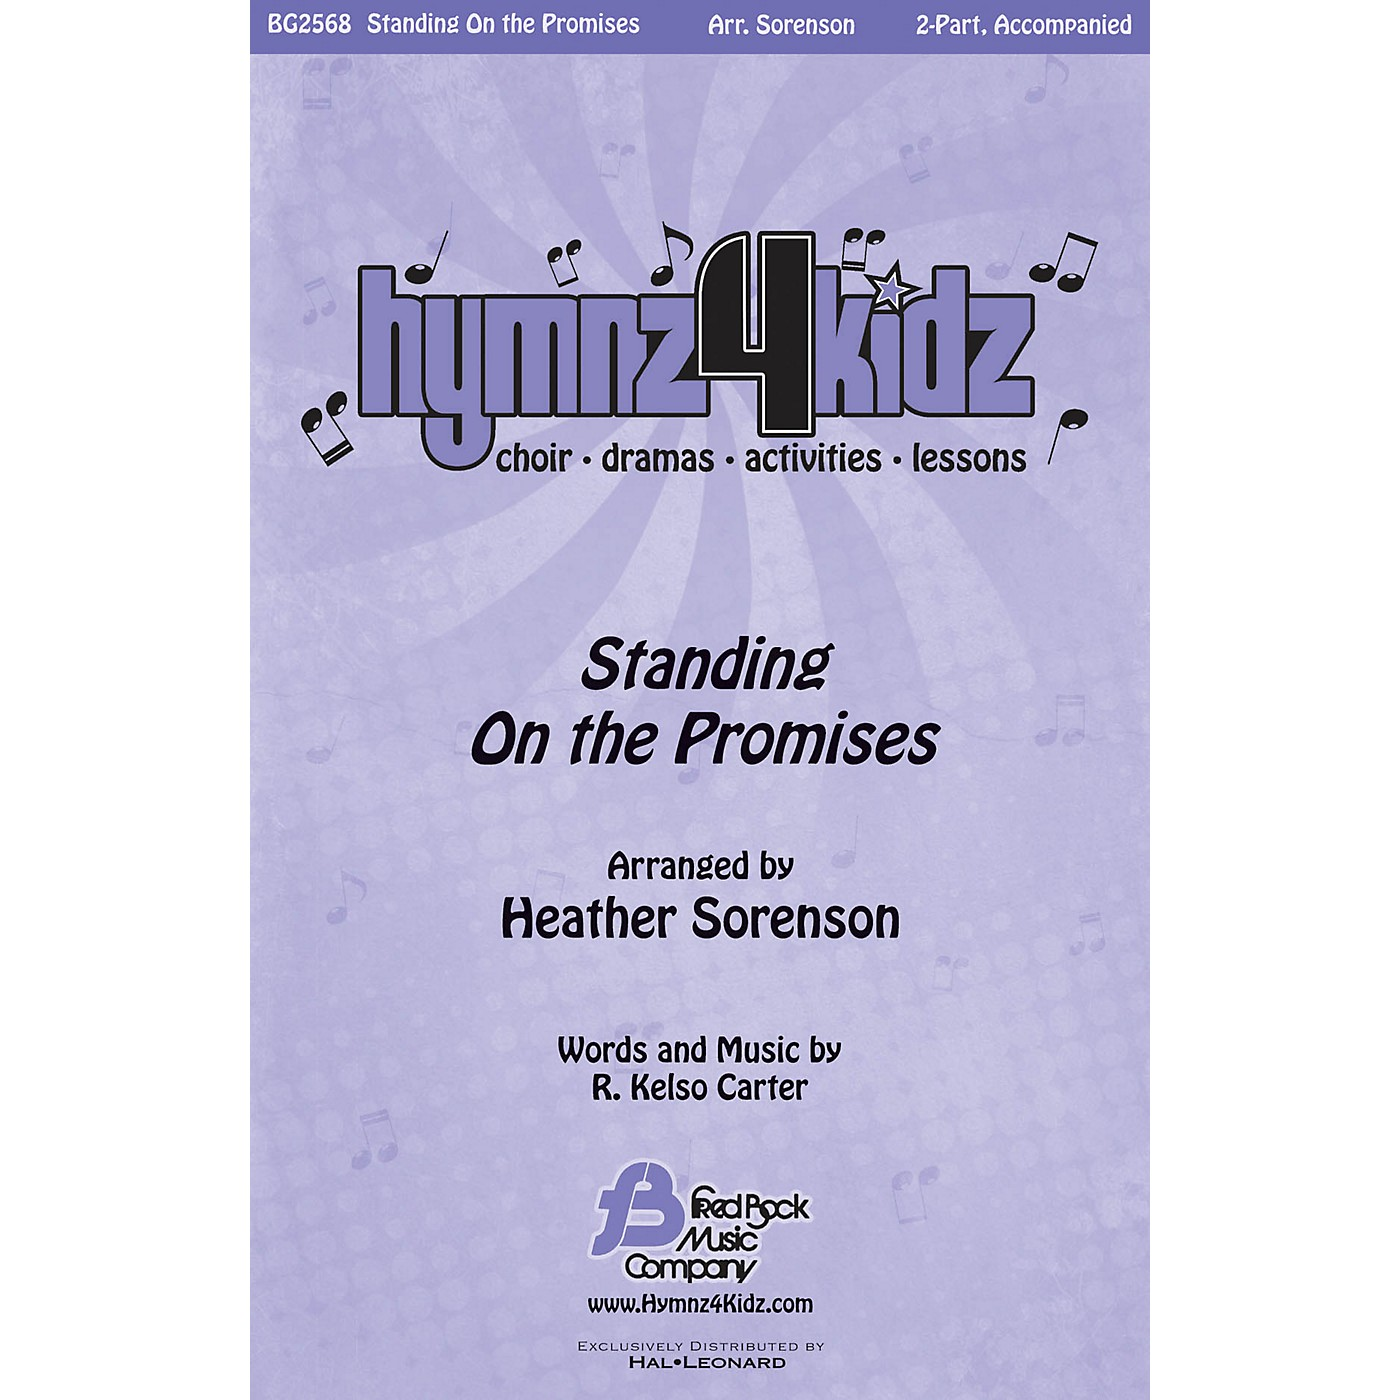 Fred Bock Music Standing on the Promises (Hymnz 4 Kidz Series) Score & Parts Arranged by Heather Sorenson thumbnail